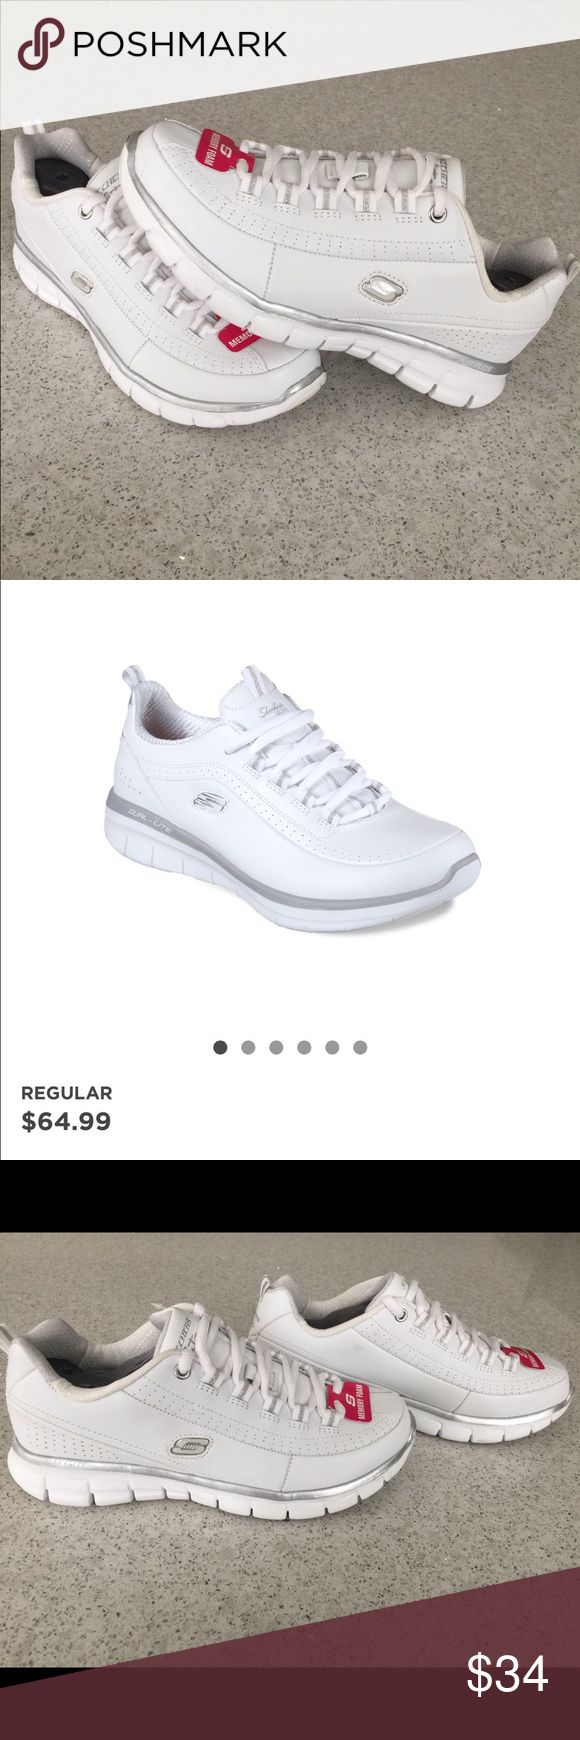 Skechers Synergy Classic Women's Lace Up Sneakers These are so cute for every outfit! Brand new with tags Skechers shoes. Originally bought from Dillard's for $65. Size 6 shoe in women's. Missing box! Skechers Shoes Athletic Shoes